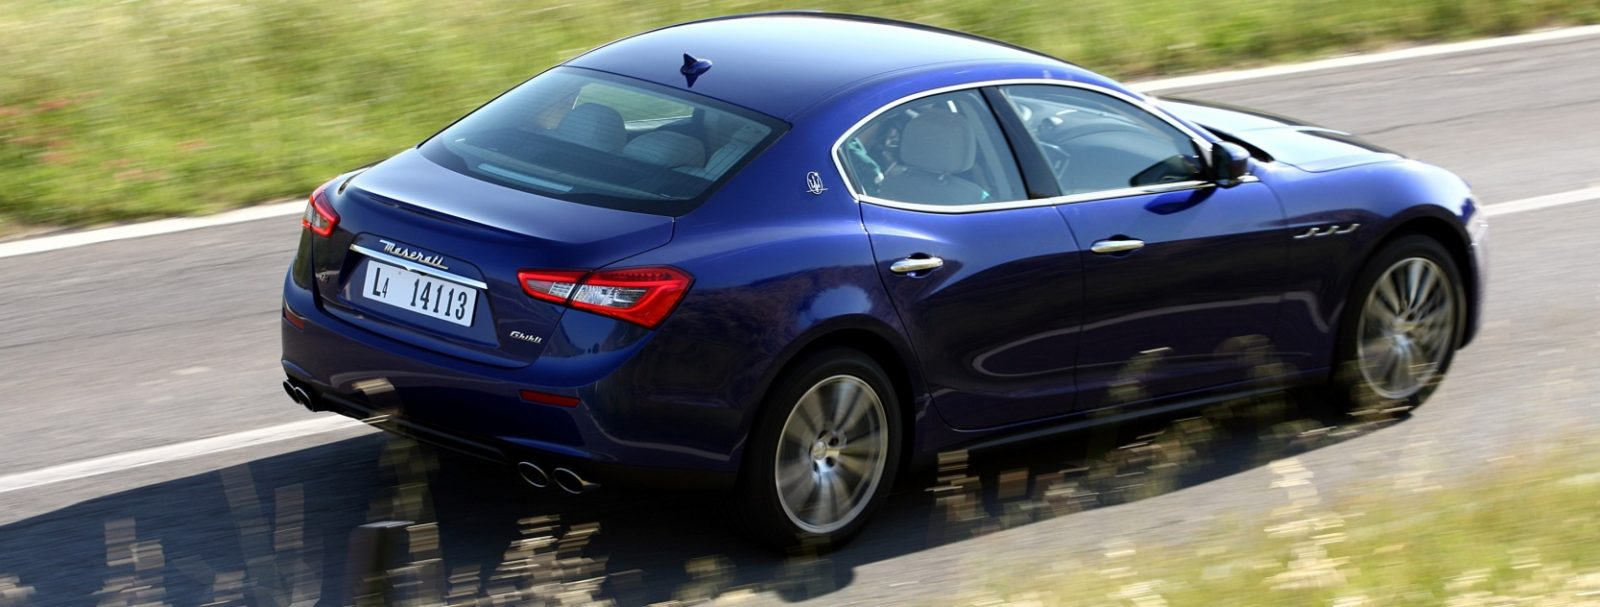 2014 Maserati Ghibli - Latest Official Photos 22